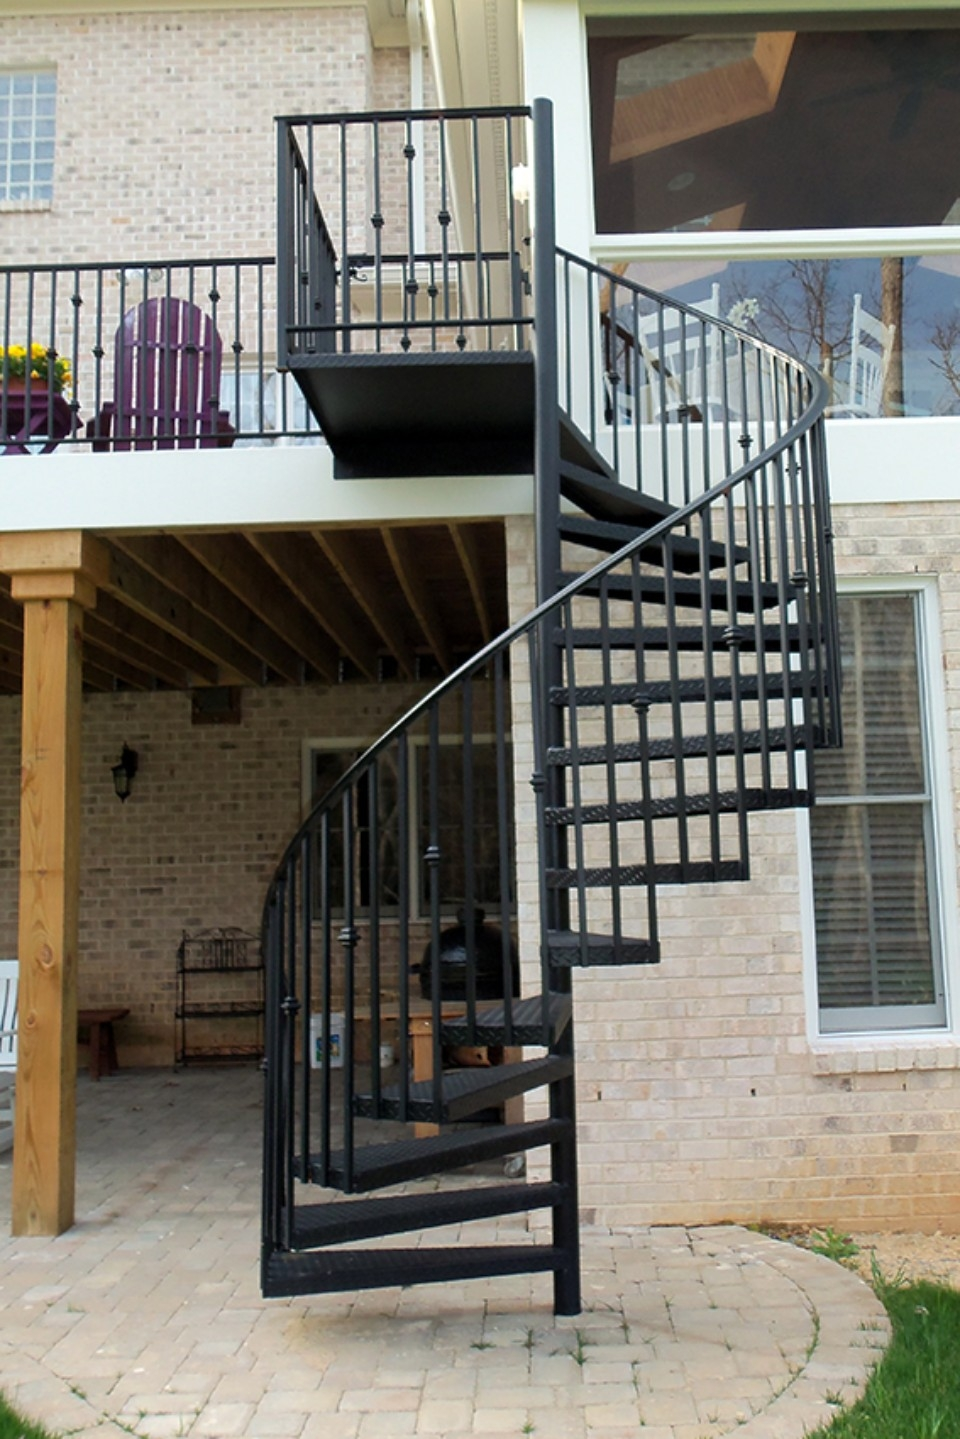 Wrought Iron Staircase Raleigh Nc Cast Iron Elegance | Spiral Staircase For Outside Deck | Iron | Custom | Double Spiral | Railing | Portable Rectangular Concrete